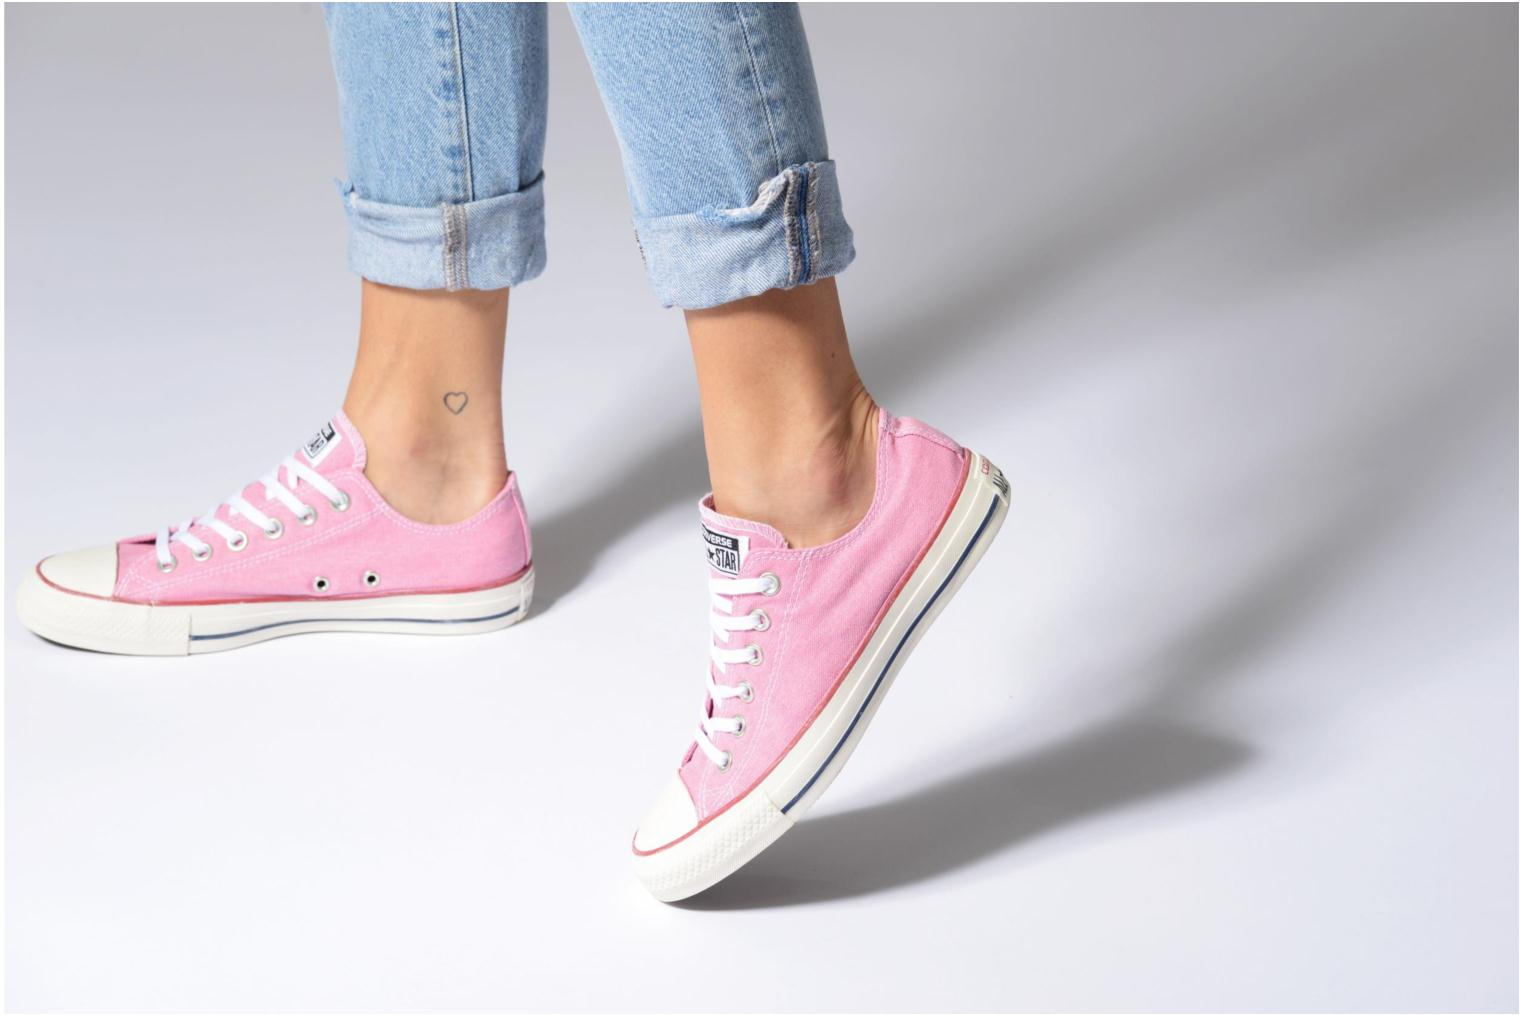 Light Orchid/Light Orchid/White Converse Chuck Taylor All Star Stone Wash Ox W (Rose)